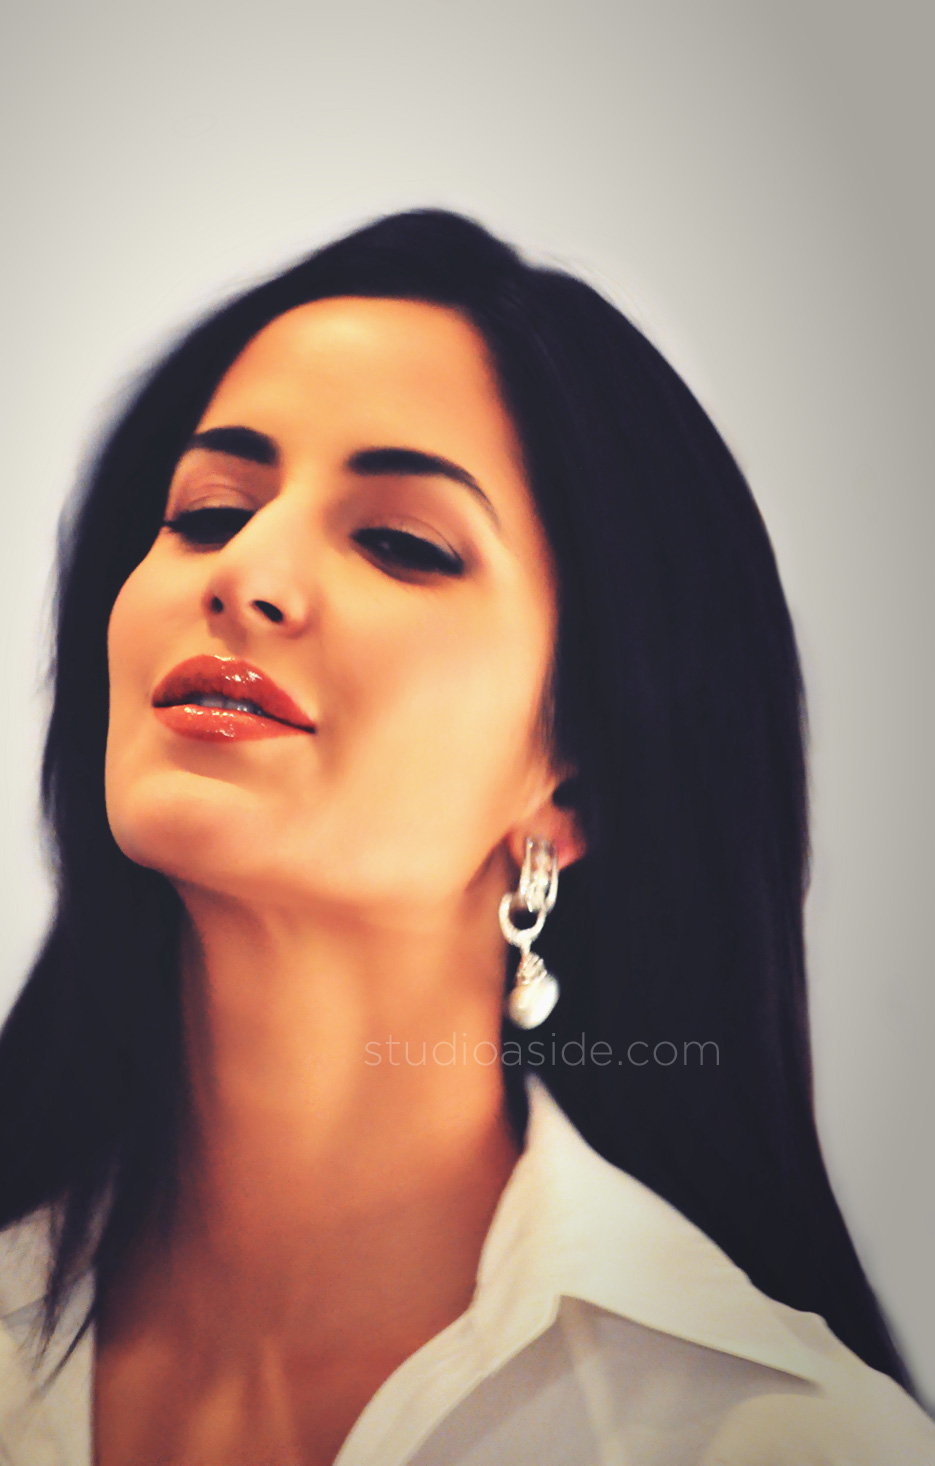 Indian Celebrity Sexy Girls: Katrina Kaif's close up pics from Pantene